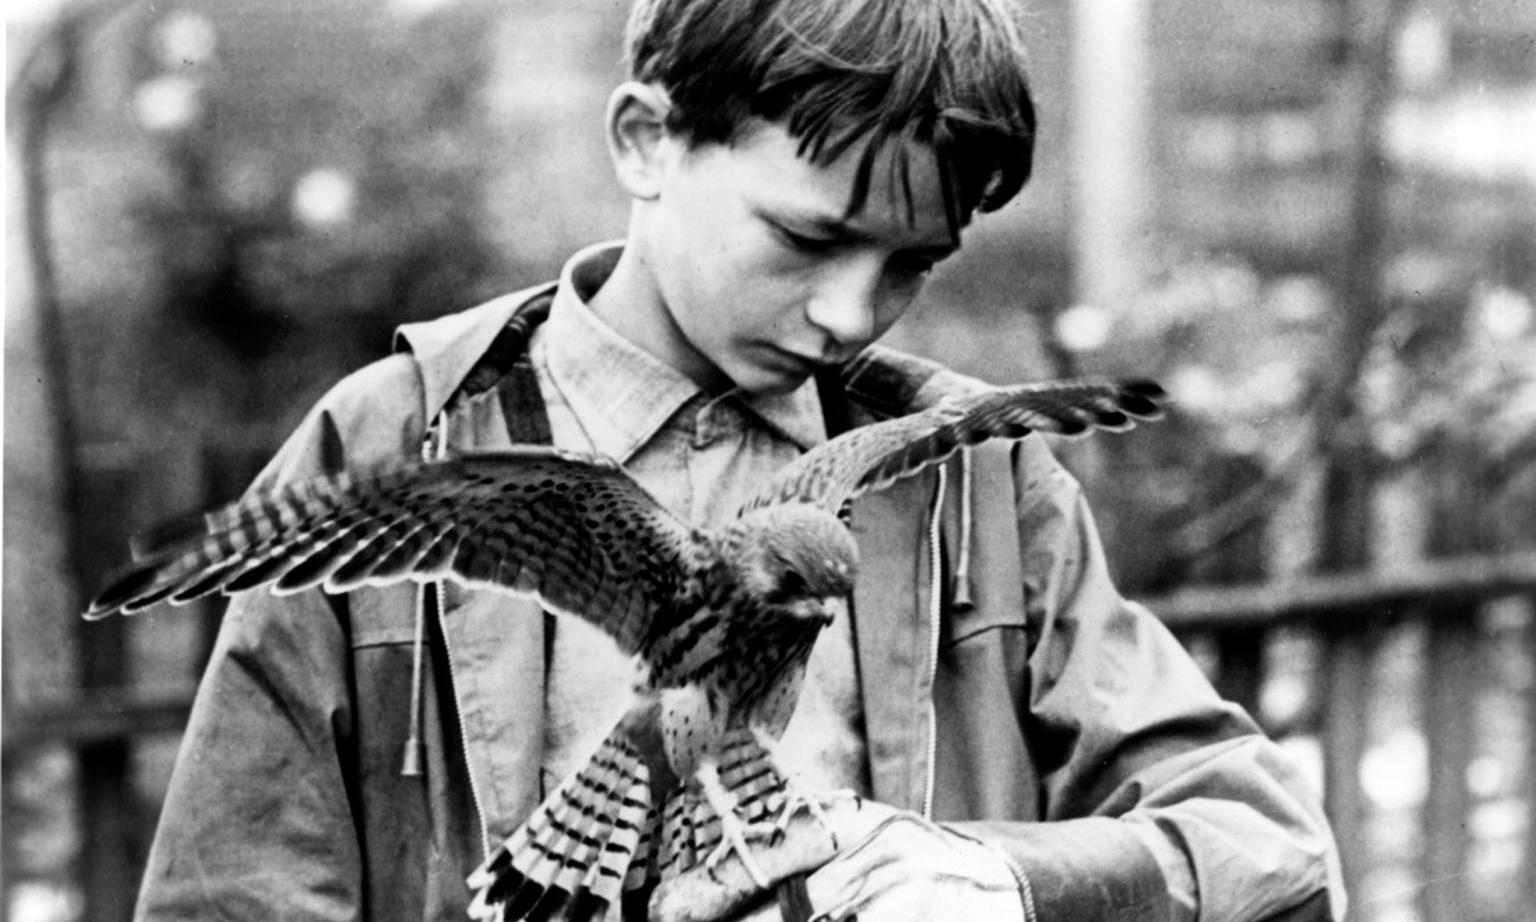 Kes reviewed: drawing the curtains on Barnsley - archive, 20 November 1969